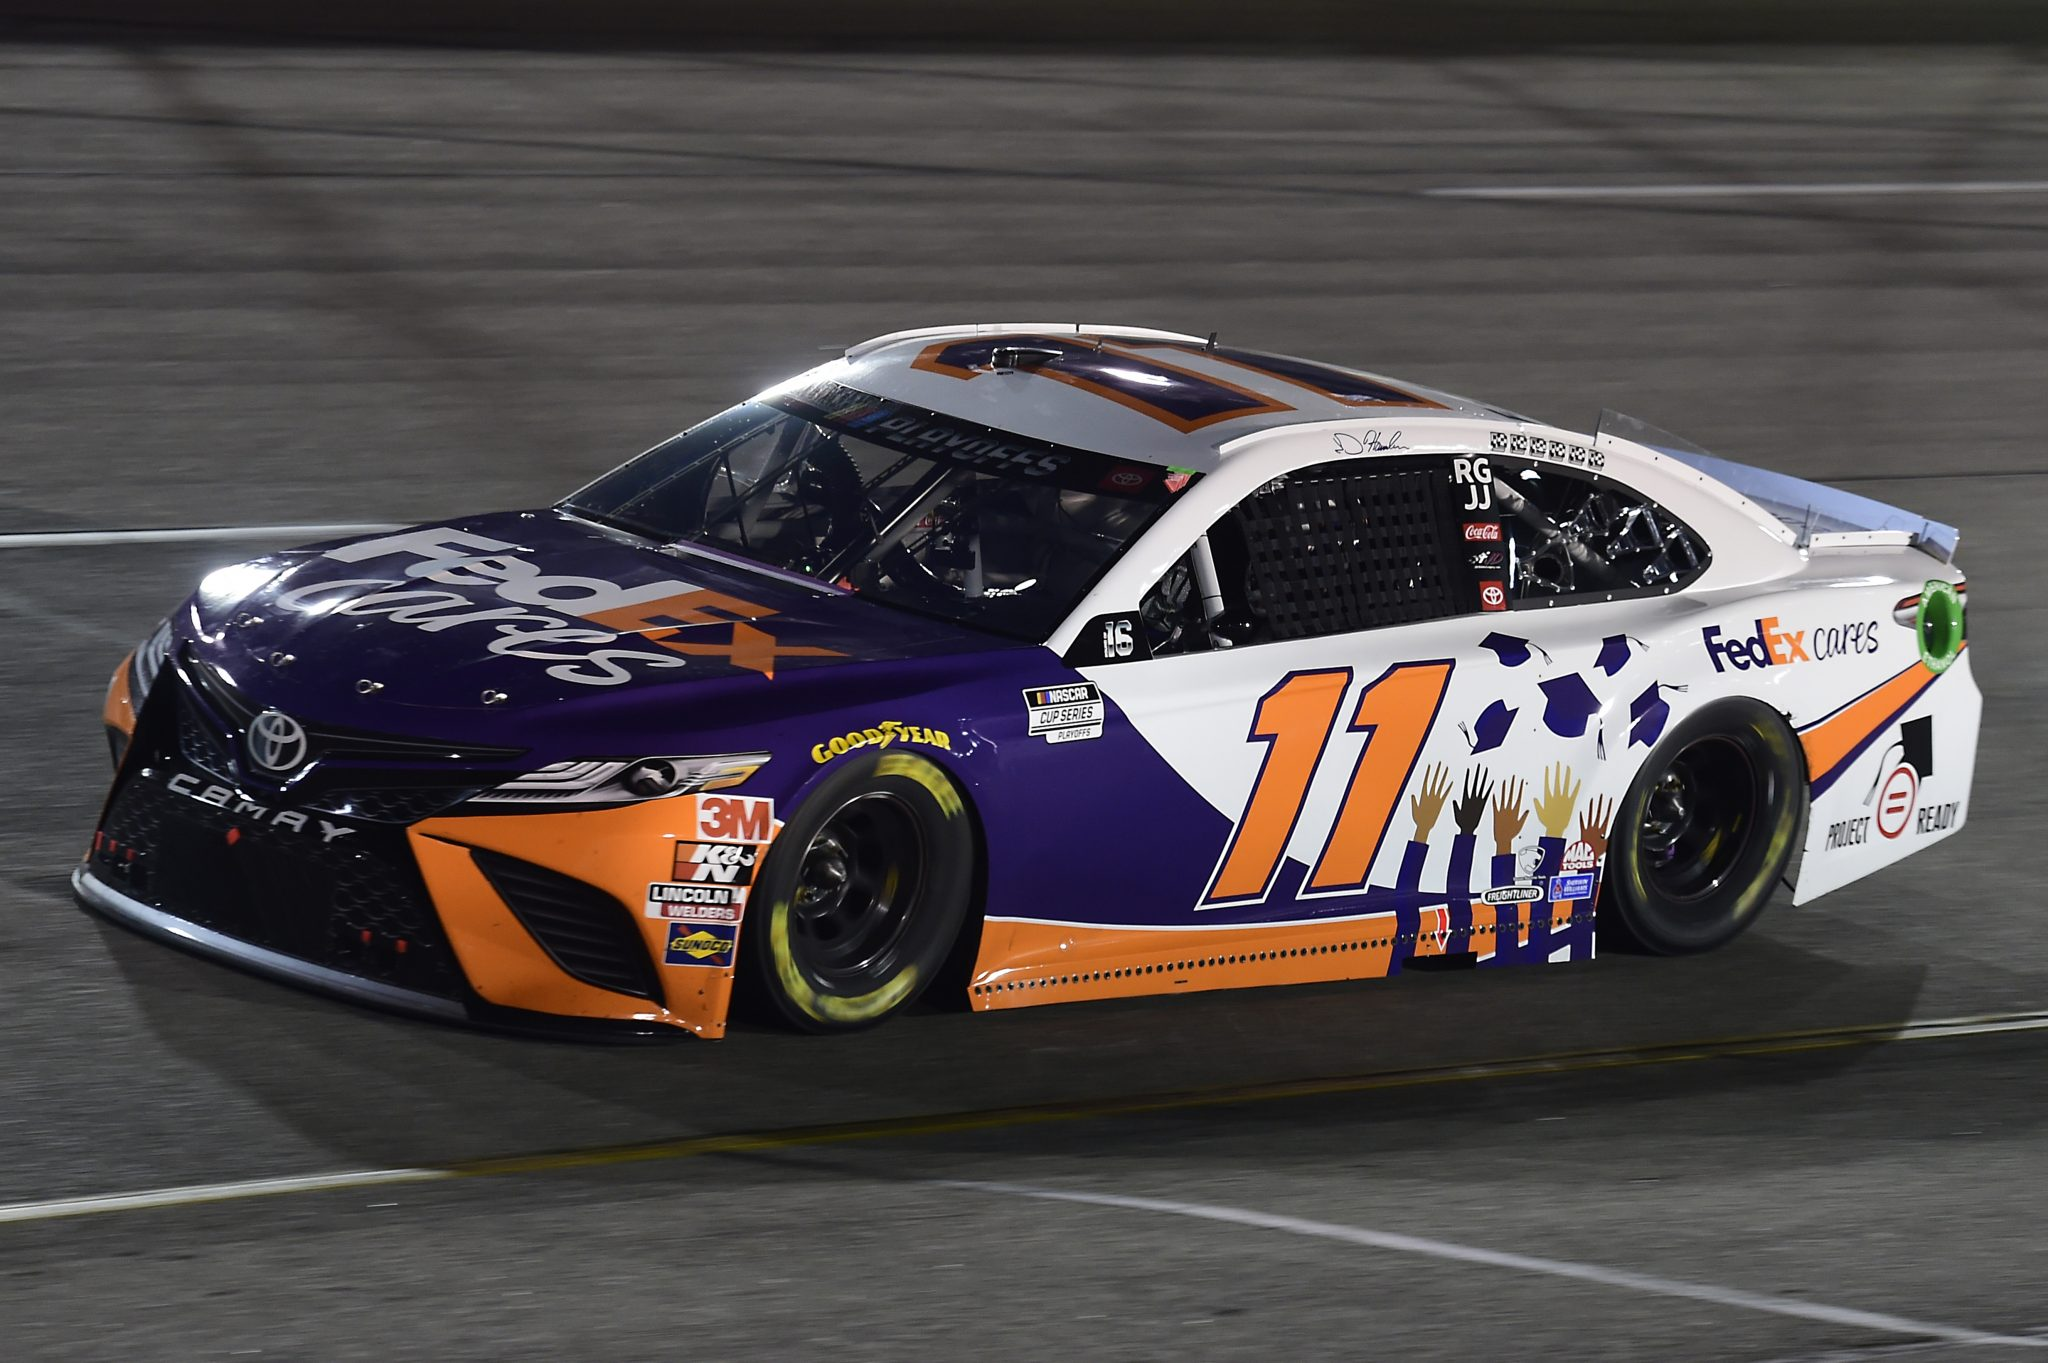 RICHMOND, VIRGINIA - SEPTEMBER 12: Denny Hamlin, driver of the #11 FedEx Cars Toyota, drives during the NASCAR Cup Series Federated Auto Parts 400 at Richmond Raceway on September 12, 2020 in Richmond, Virginia. (Photo by Jared C. Tilton/Getty Images) | Getty Images